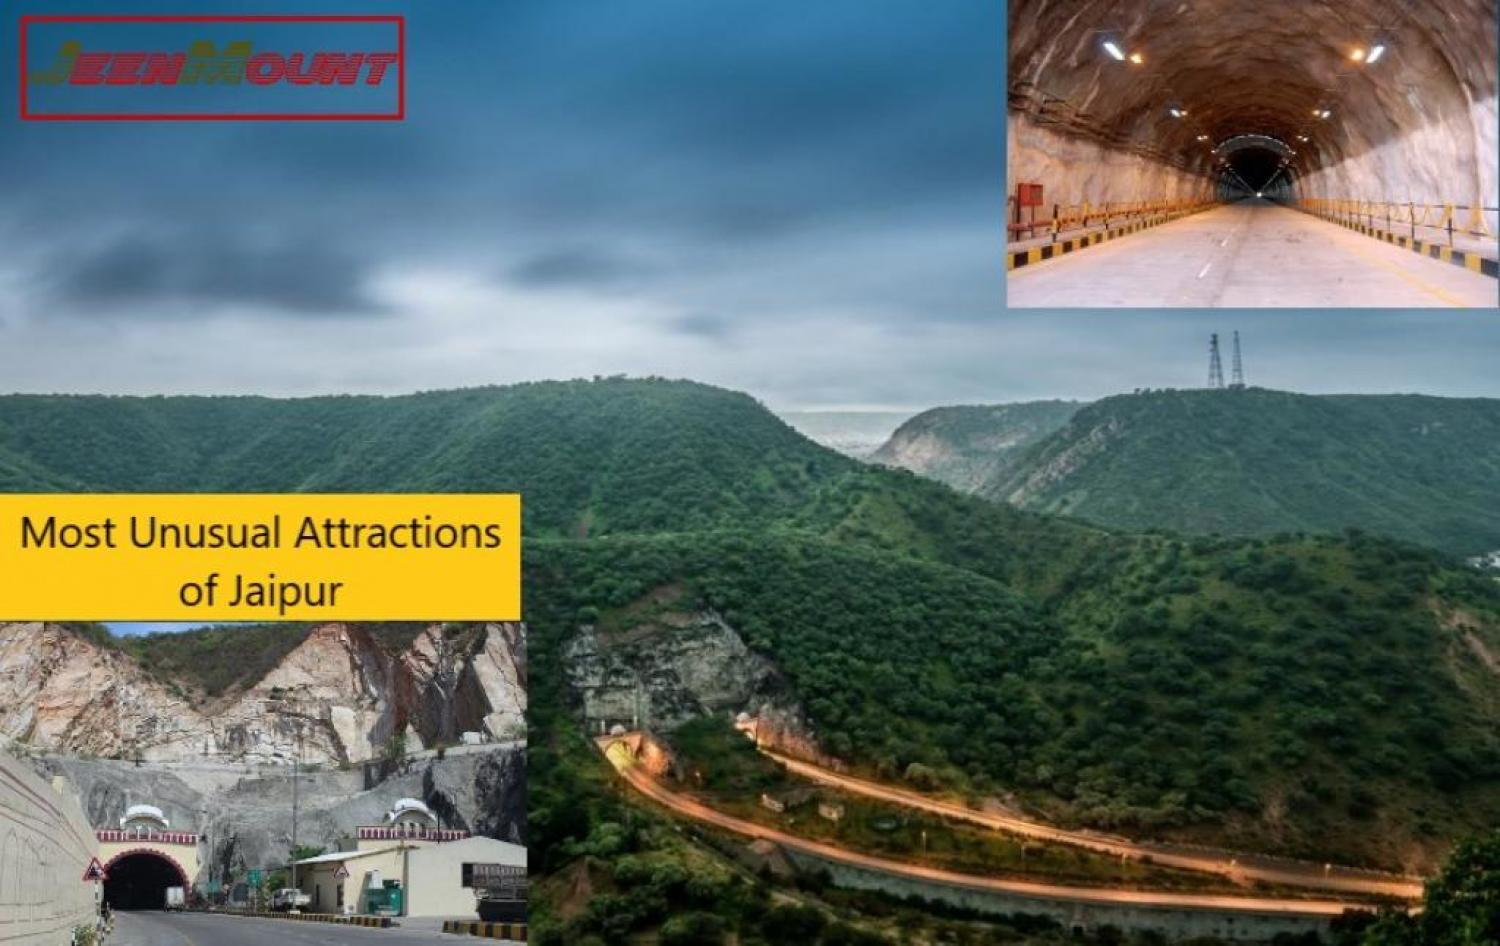 The Most Unusual Attractions in Jaipur